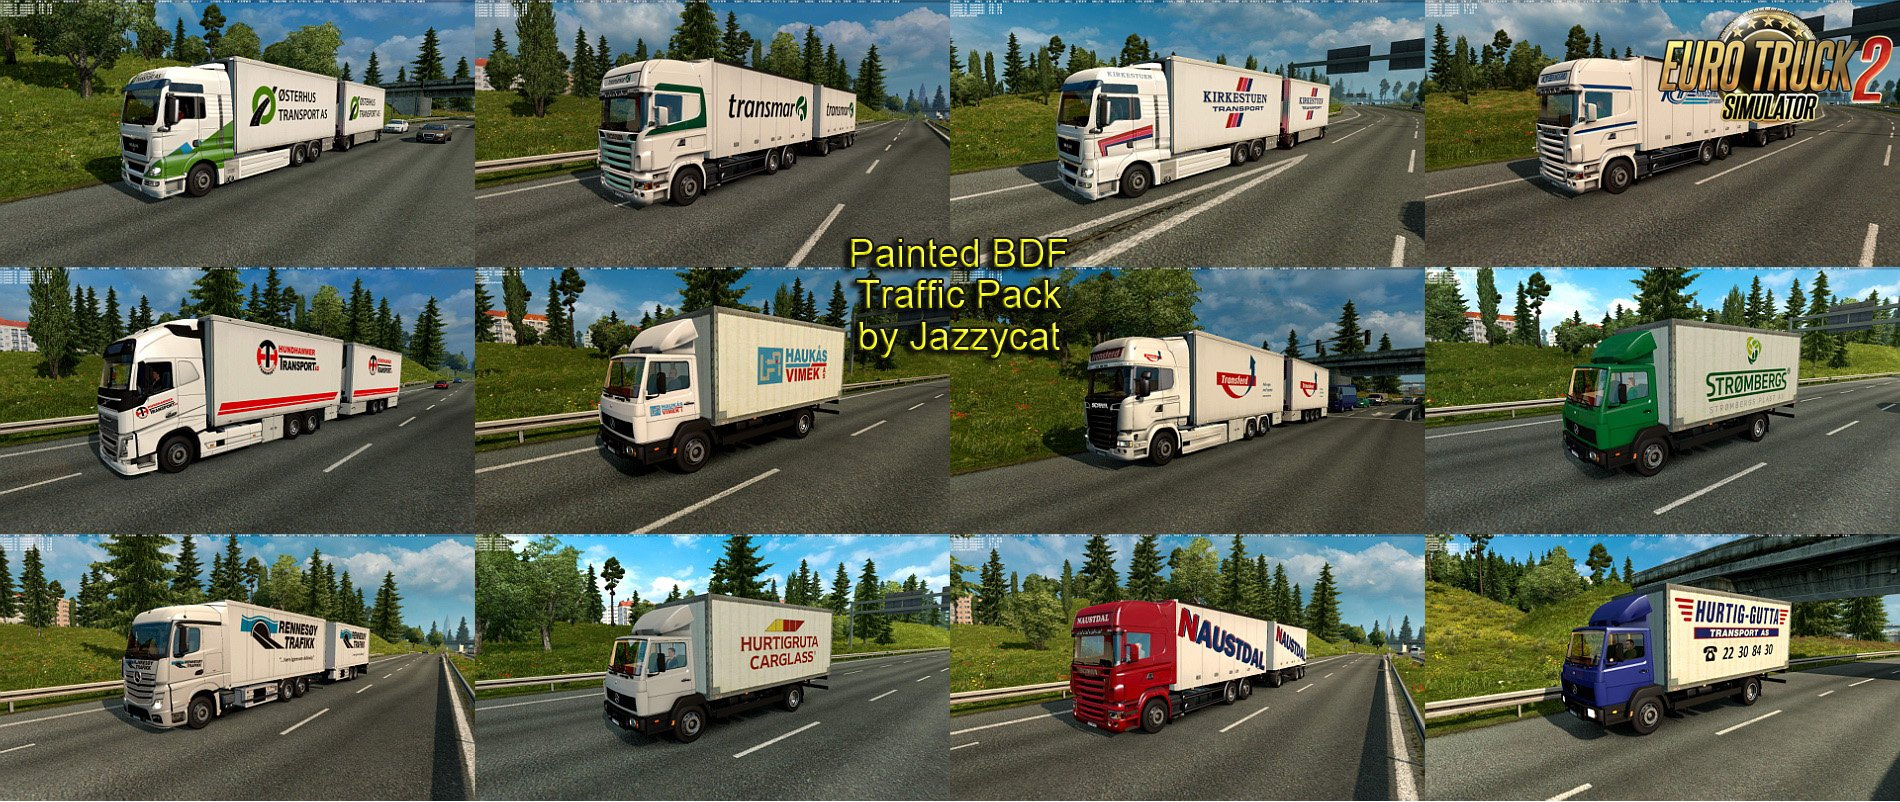 Painted BDF Traffic Pack v2.5 by Jazzycat